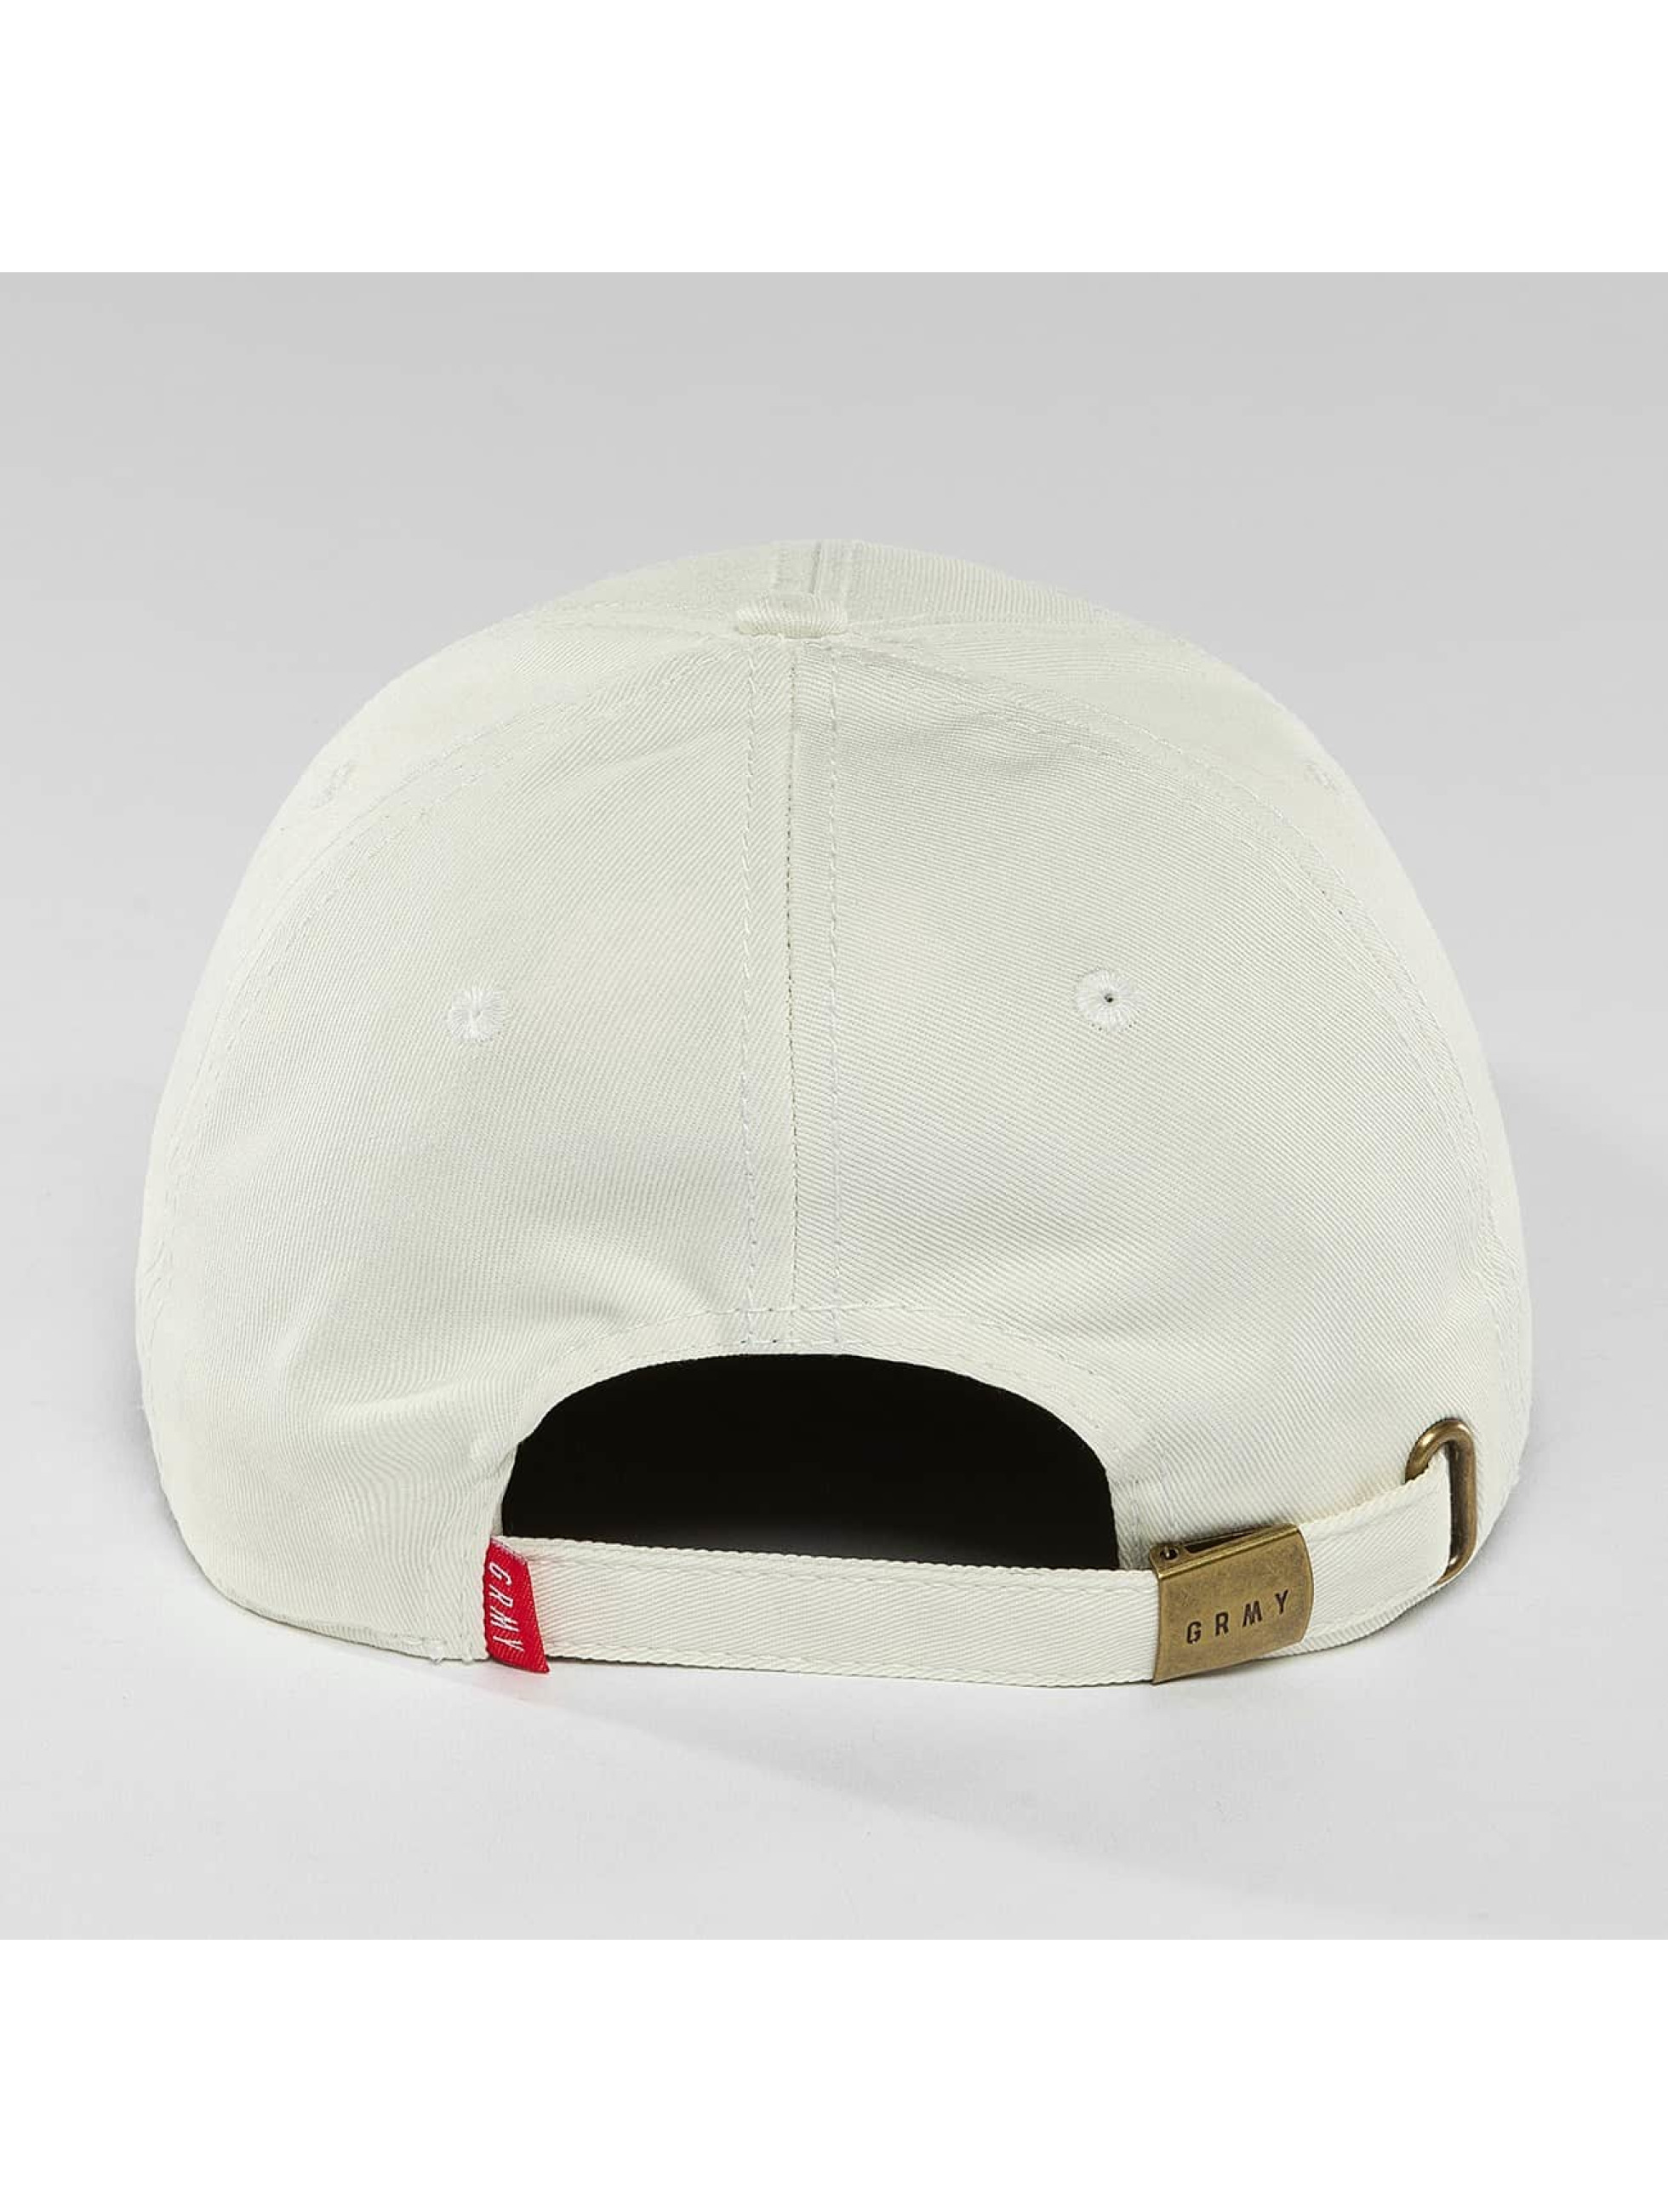 Grimey Wear Snapback Cap In Havana Curved Visor white